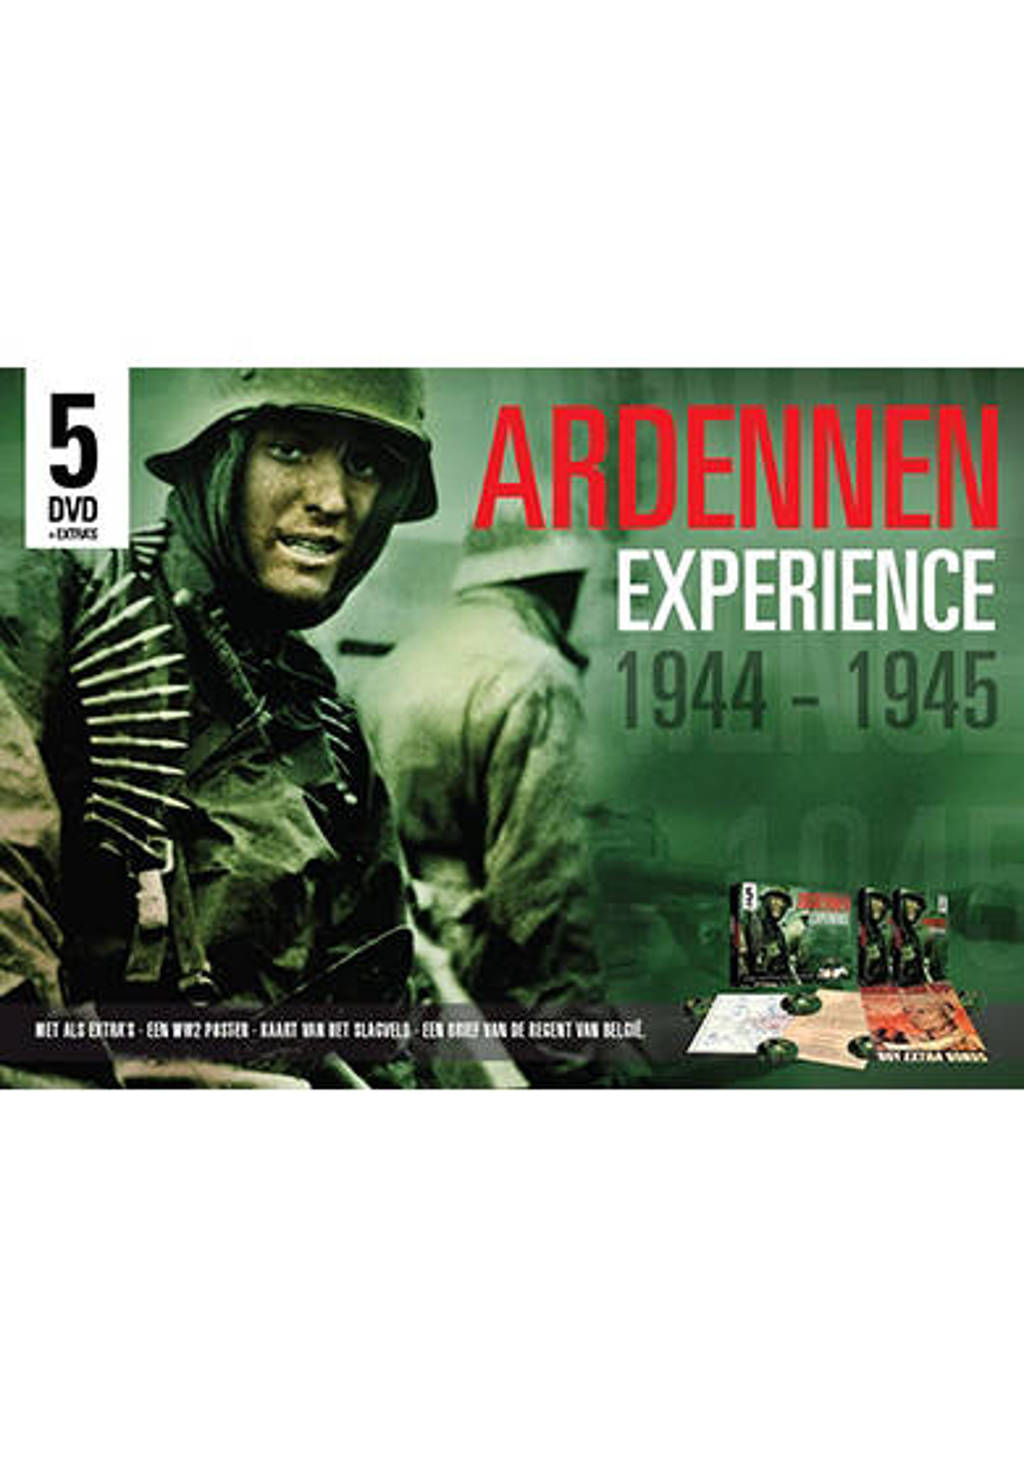 Ardennen 1944-1945 (Collectors edition) (DVD)